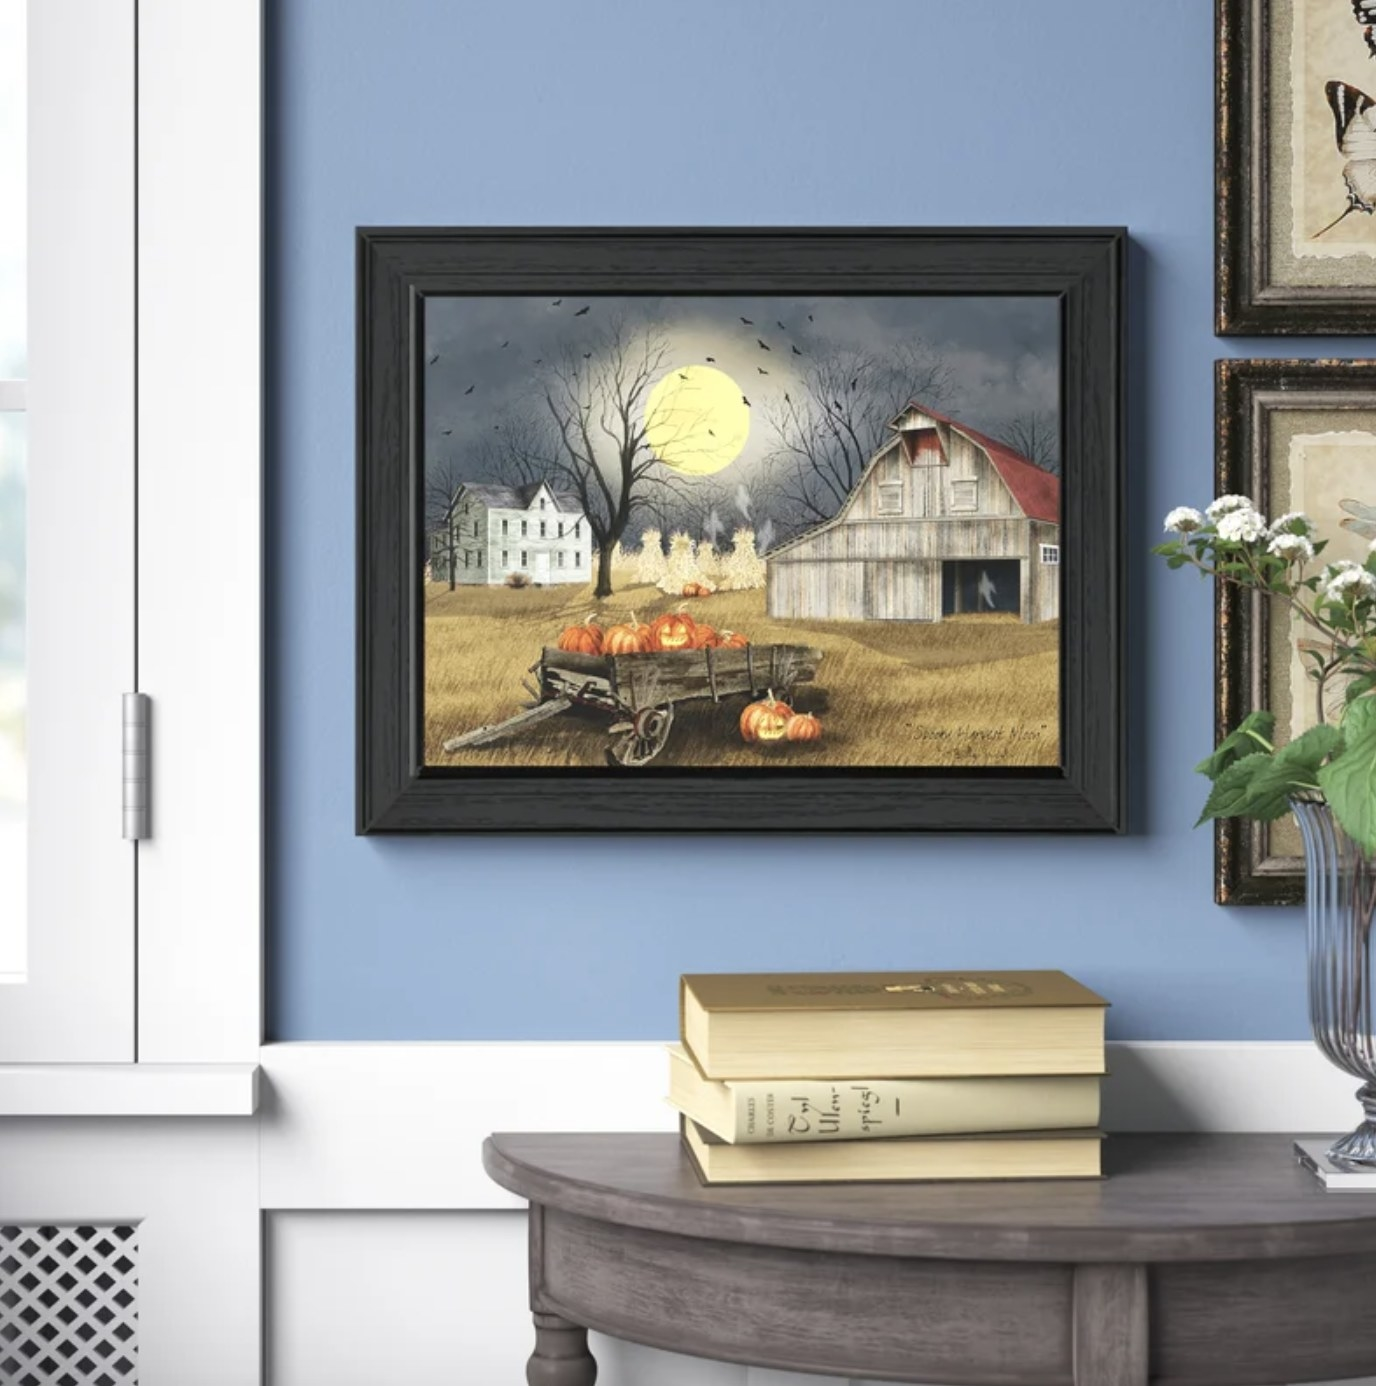 The harvest moon painting has a barn, trees with bare branches, a wagon full of pumpkins, bats and various other spooky elements